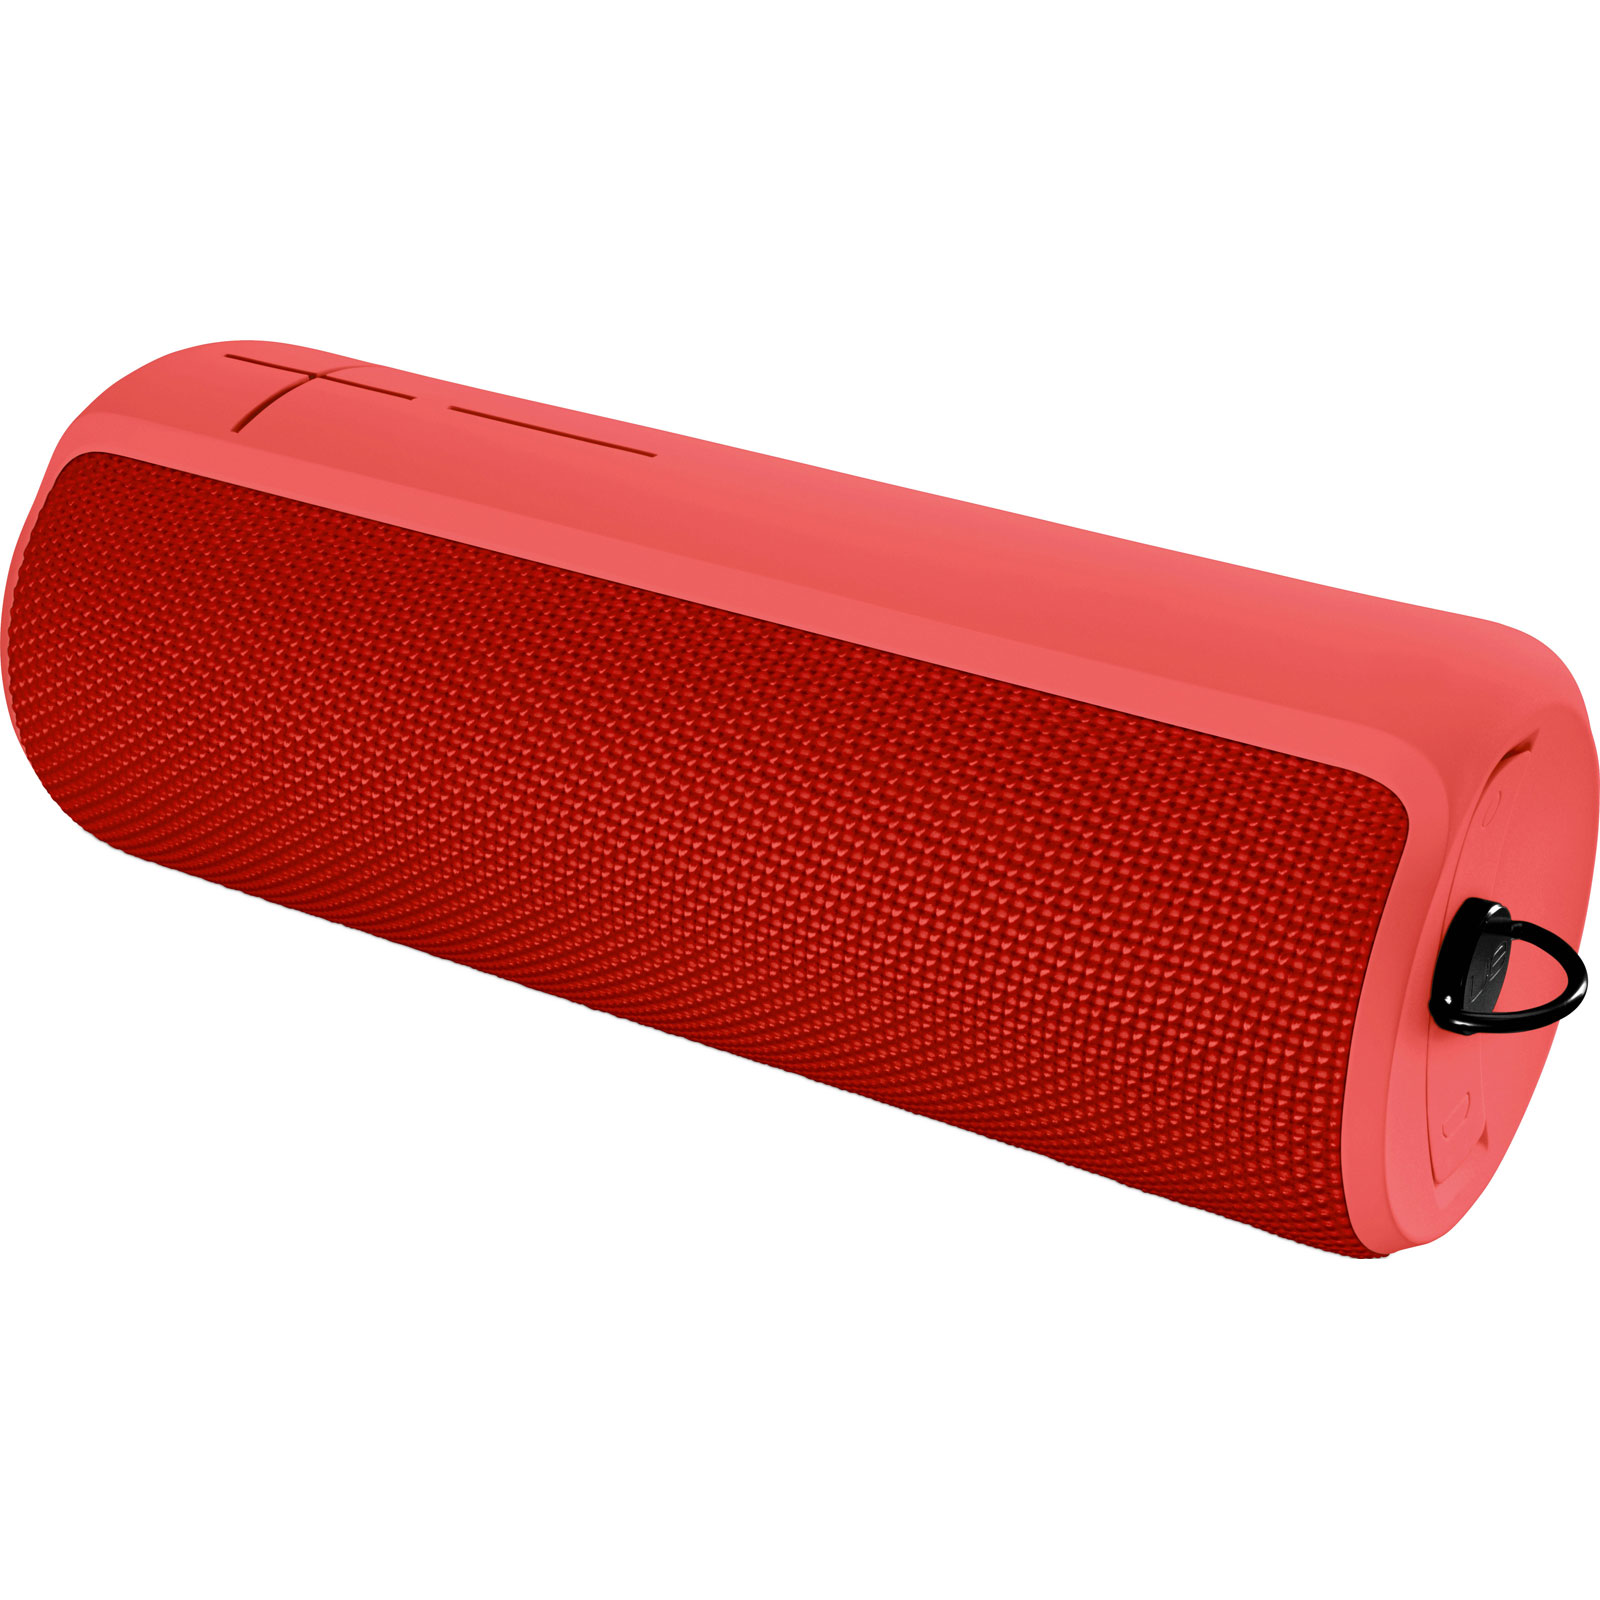 ue boom 2 rouge dock enceinte bluetooth ultimate ears sur. Black Bedroom Furniture Sets. Home Design Ideas